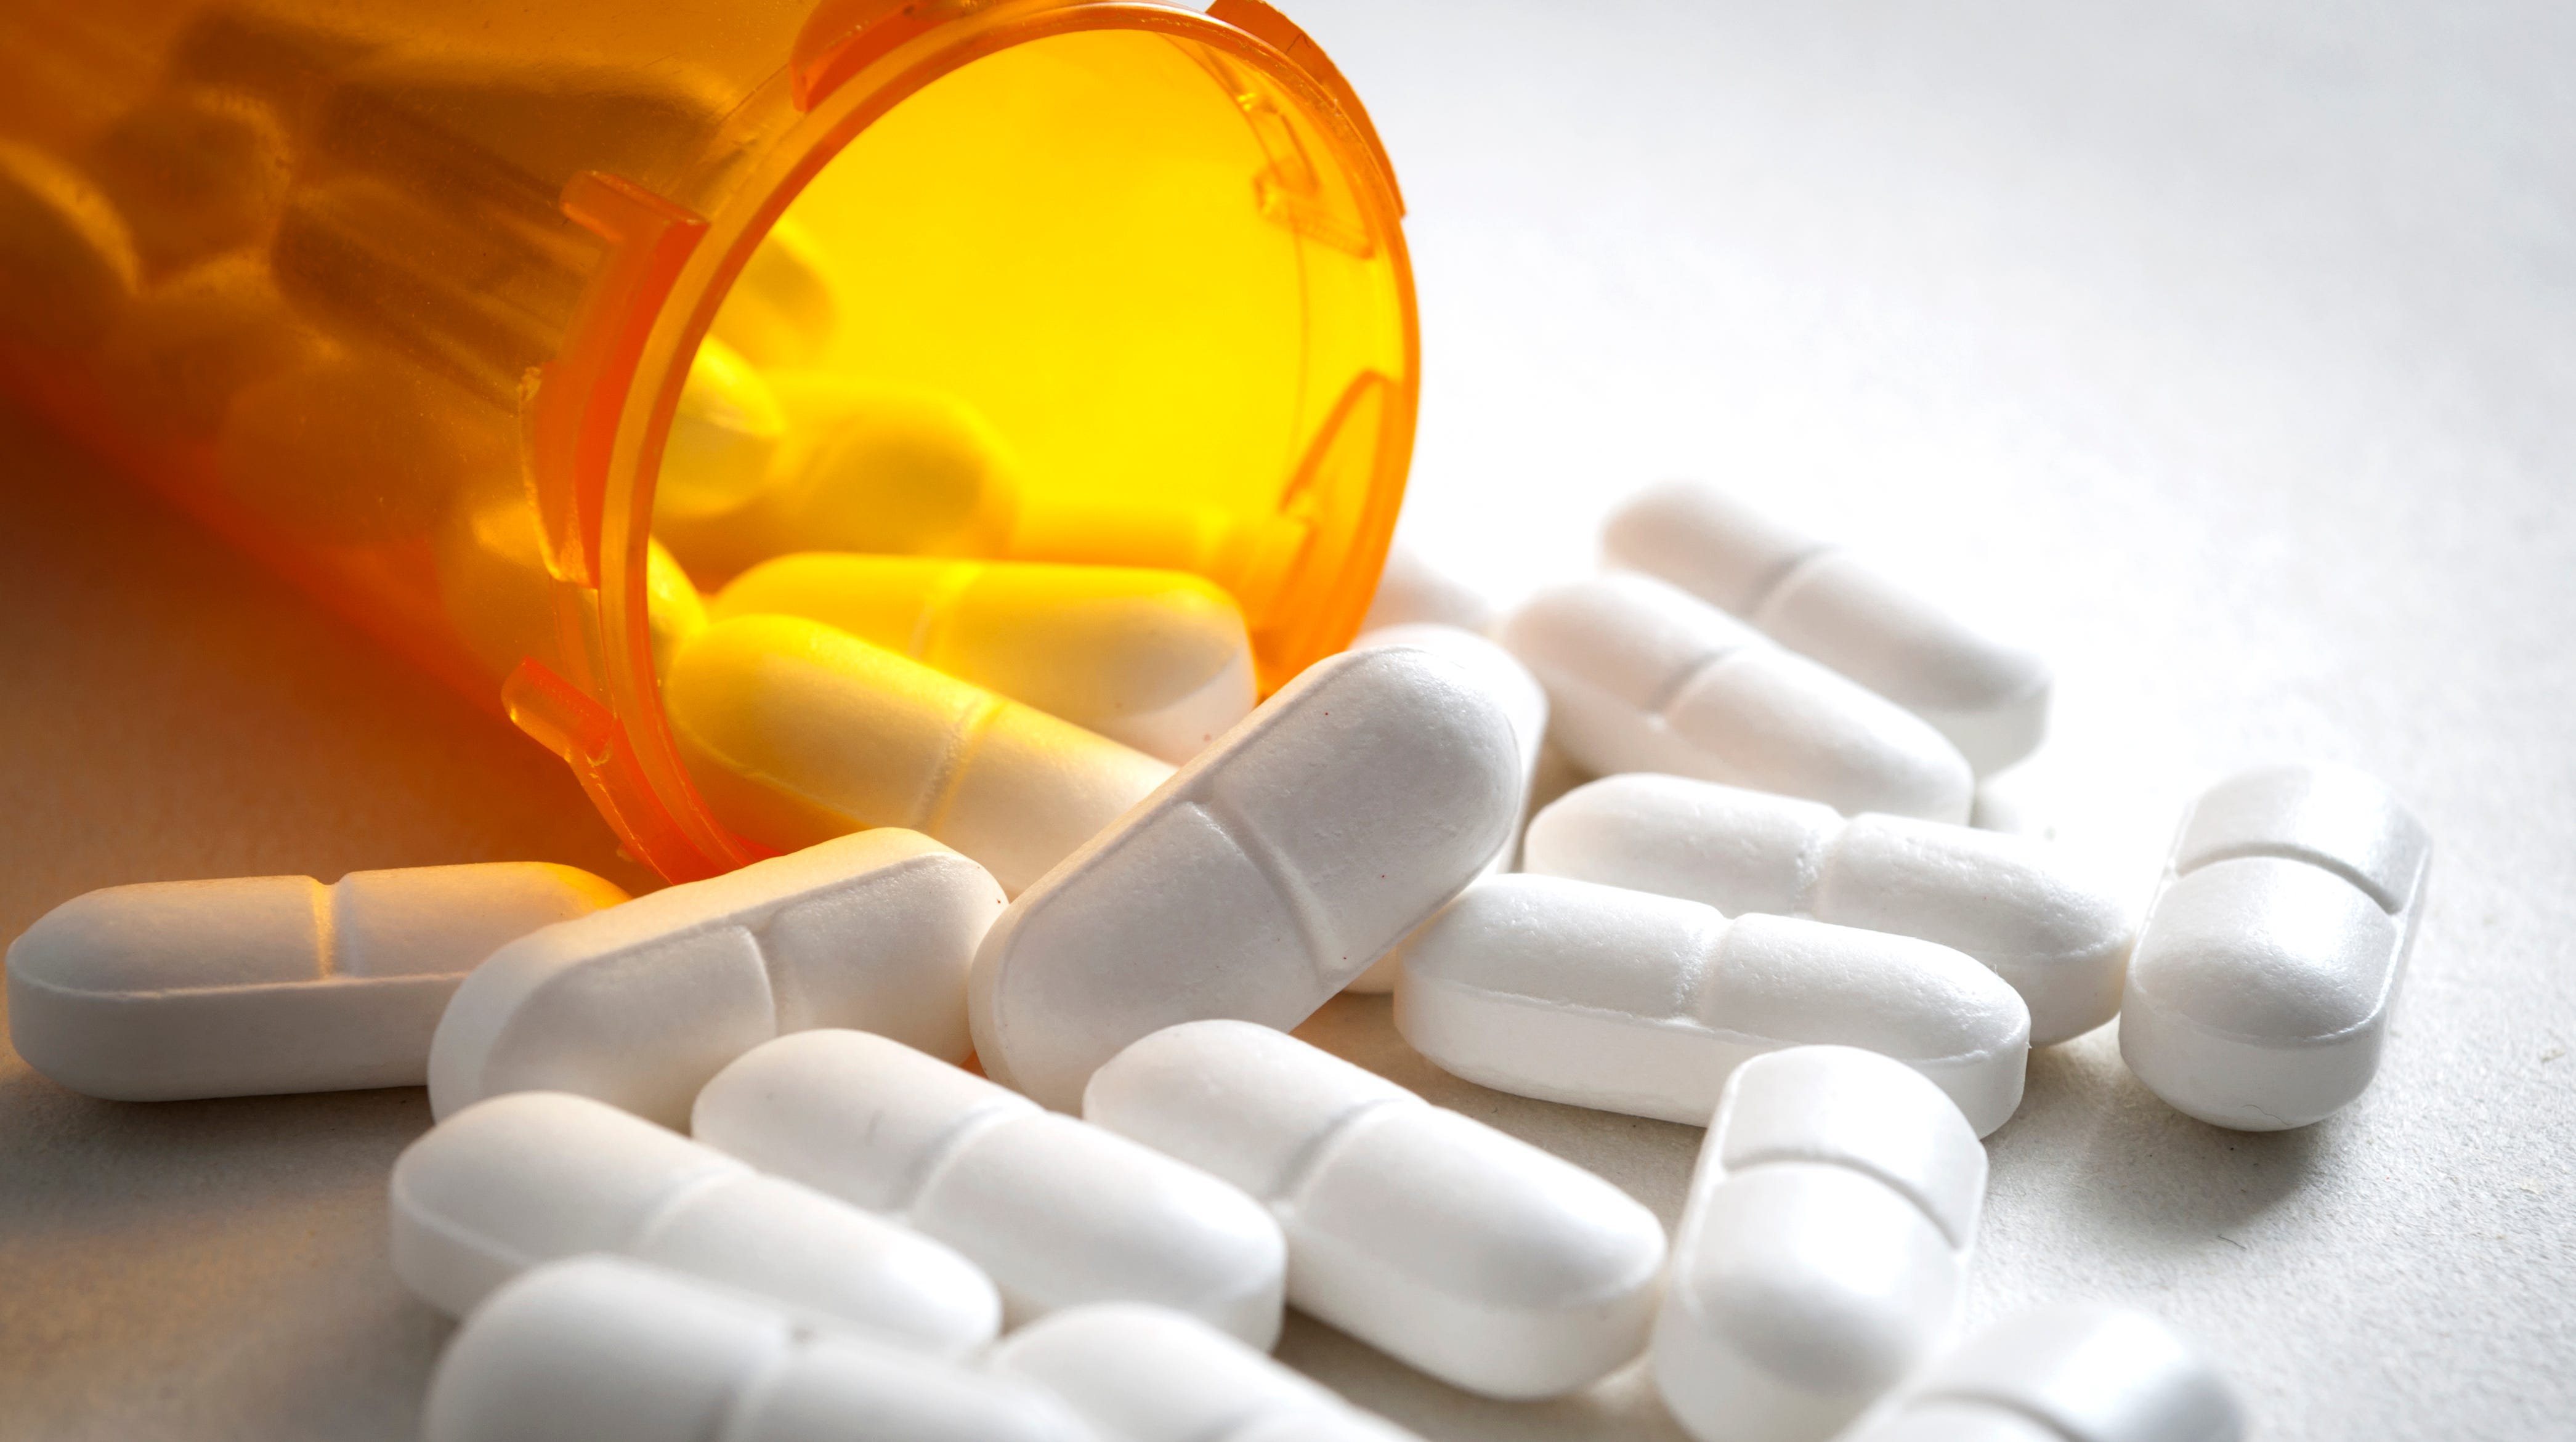 Opioids relieve pain in the short term, but if not used properly, can cause serious side effects, such as drowsiness, confusion, nausea, constipation, slowed breathing and even death.